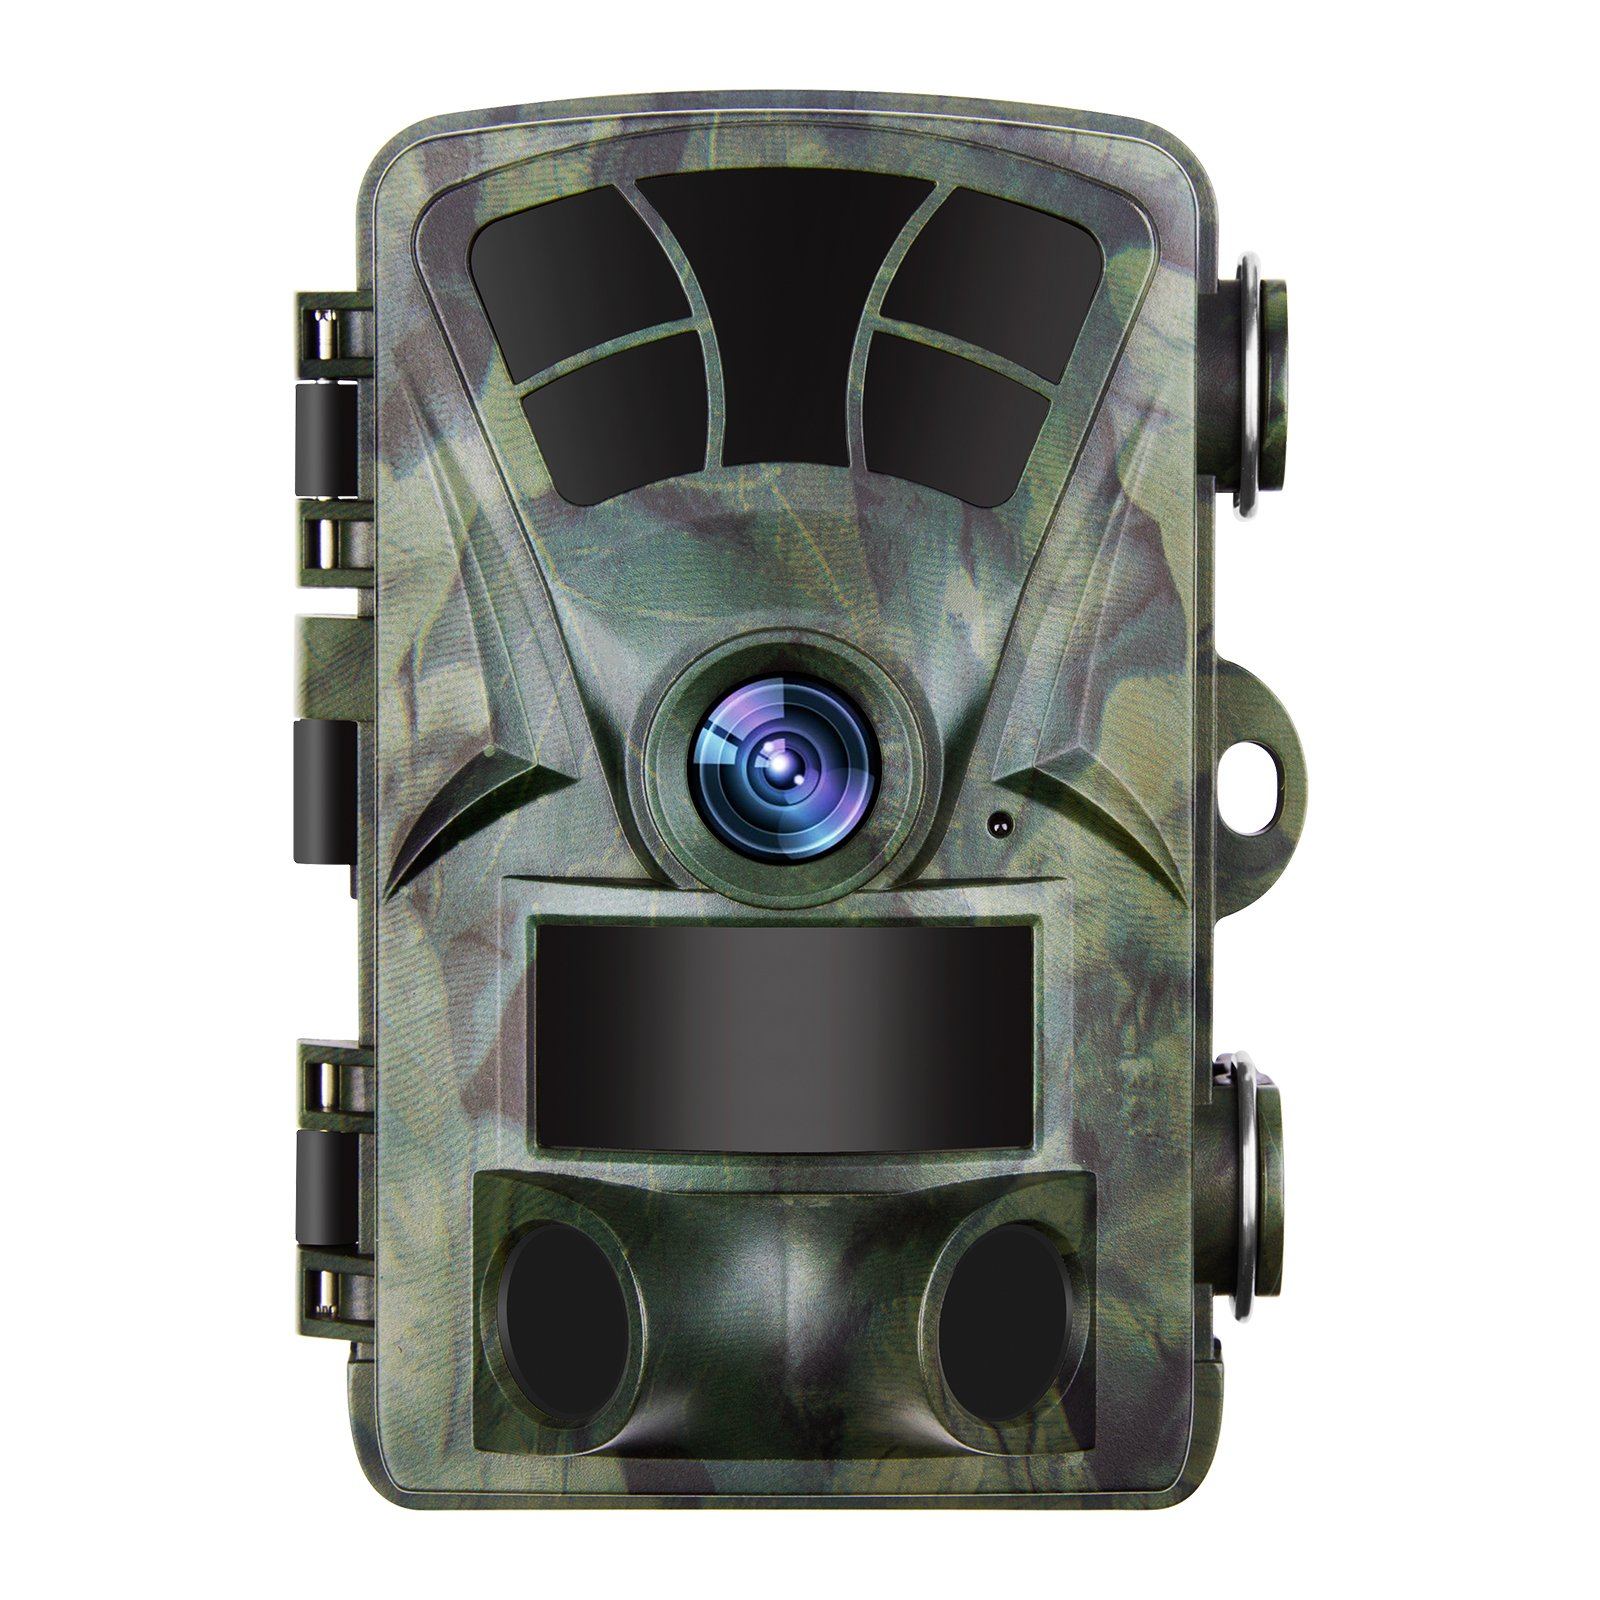 D&F Trail Camera 1080P Surveillance Cam Hunting Camera,2.4'' TFT LED Display 120° PIR Sensor Lens Water resistant Night Vision for Game & Hunting & Home Security by D&F